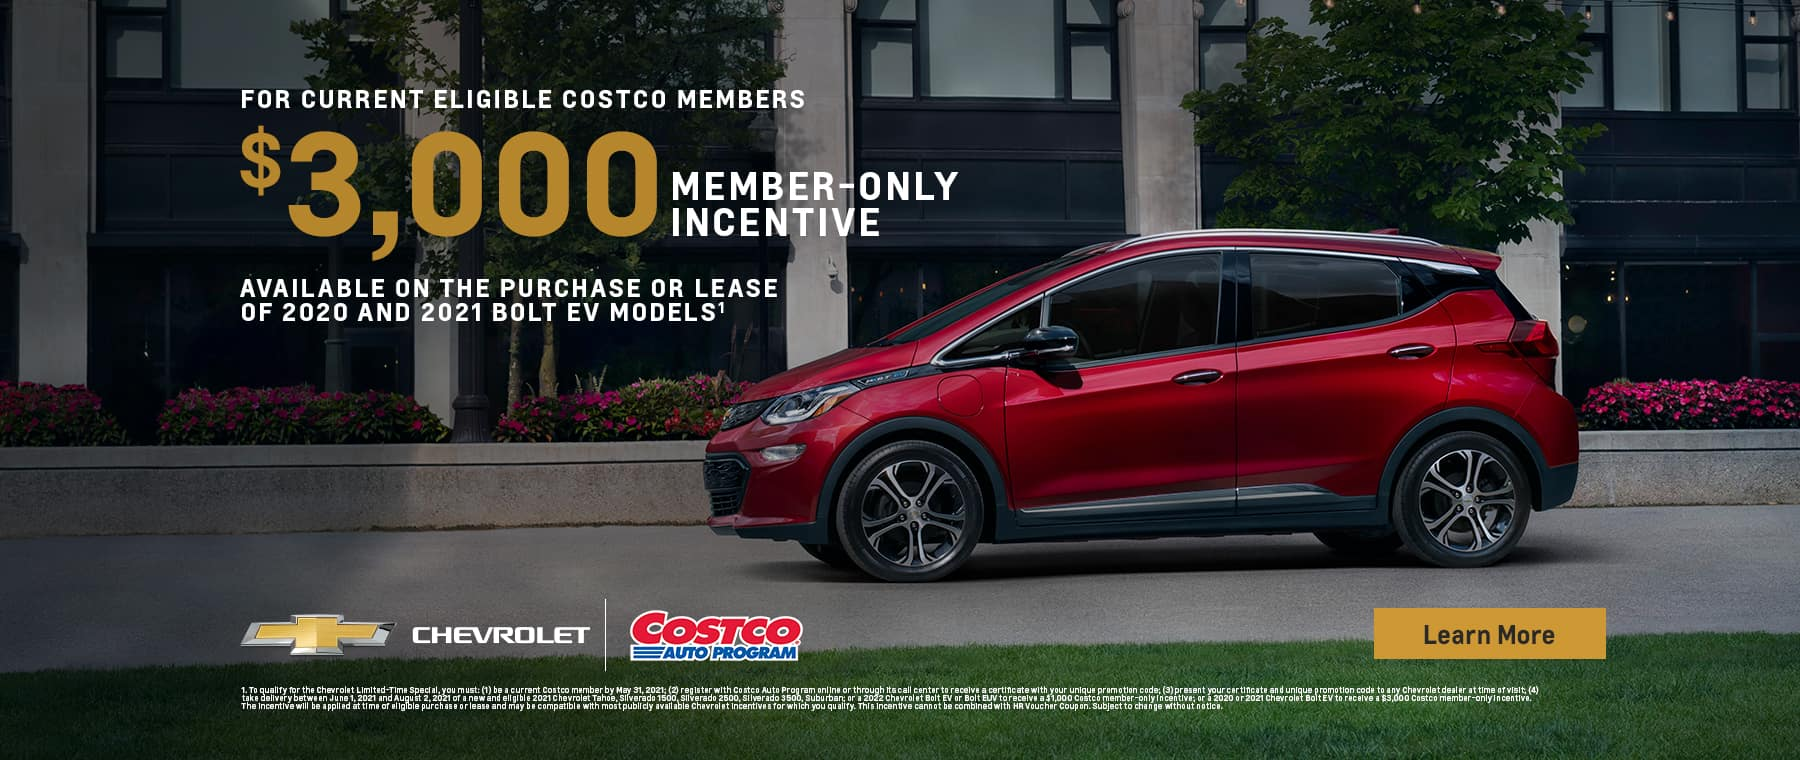 $3,000 Member-Only Incentive